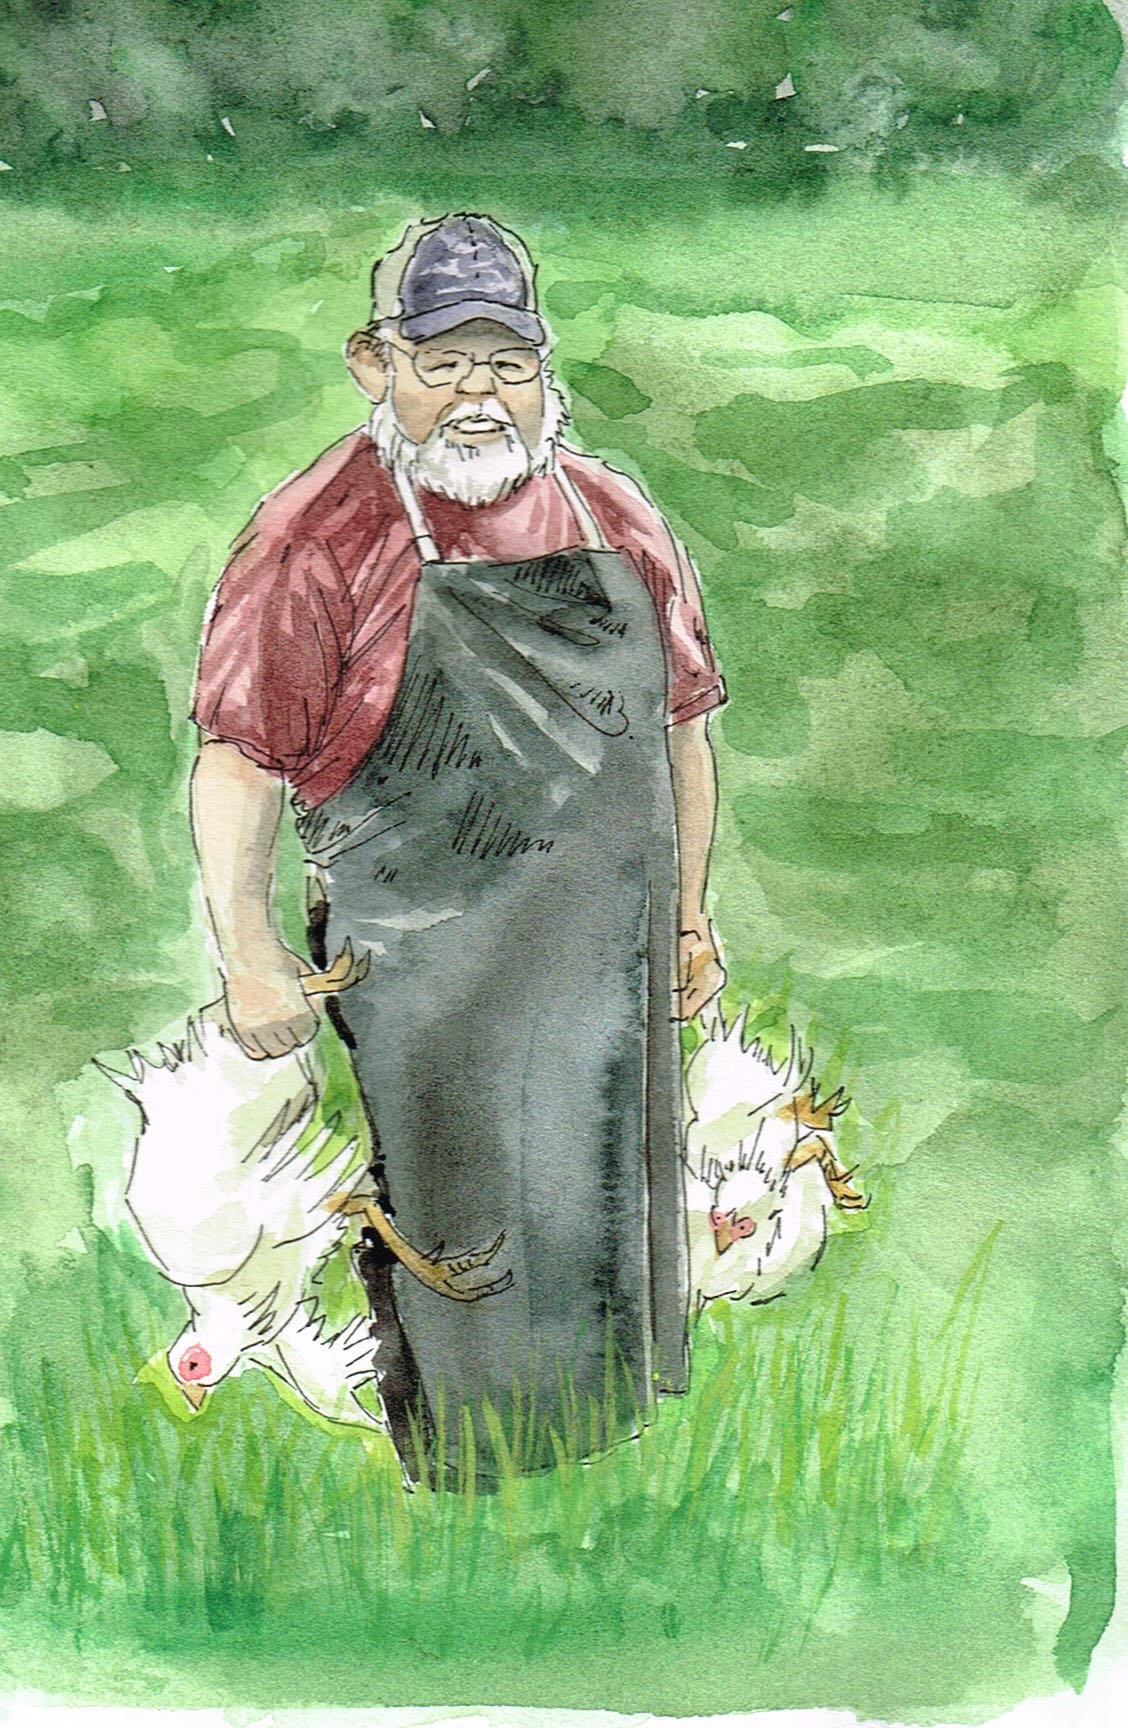 """Monty on the job, watercolor and ink on scrap paper, about 5""""x3.5""""."""